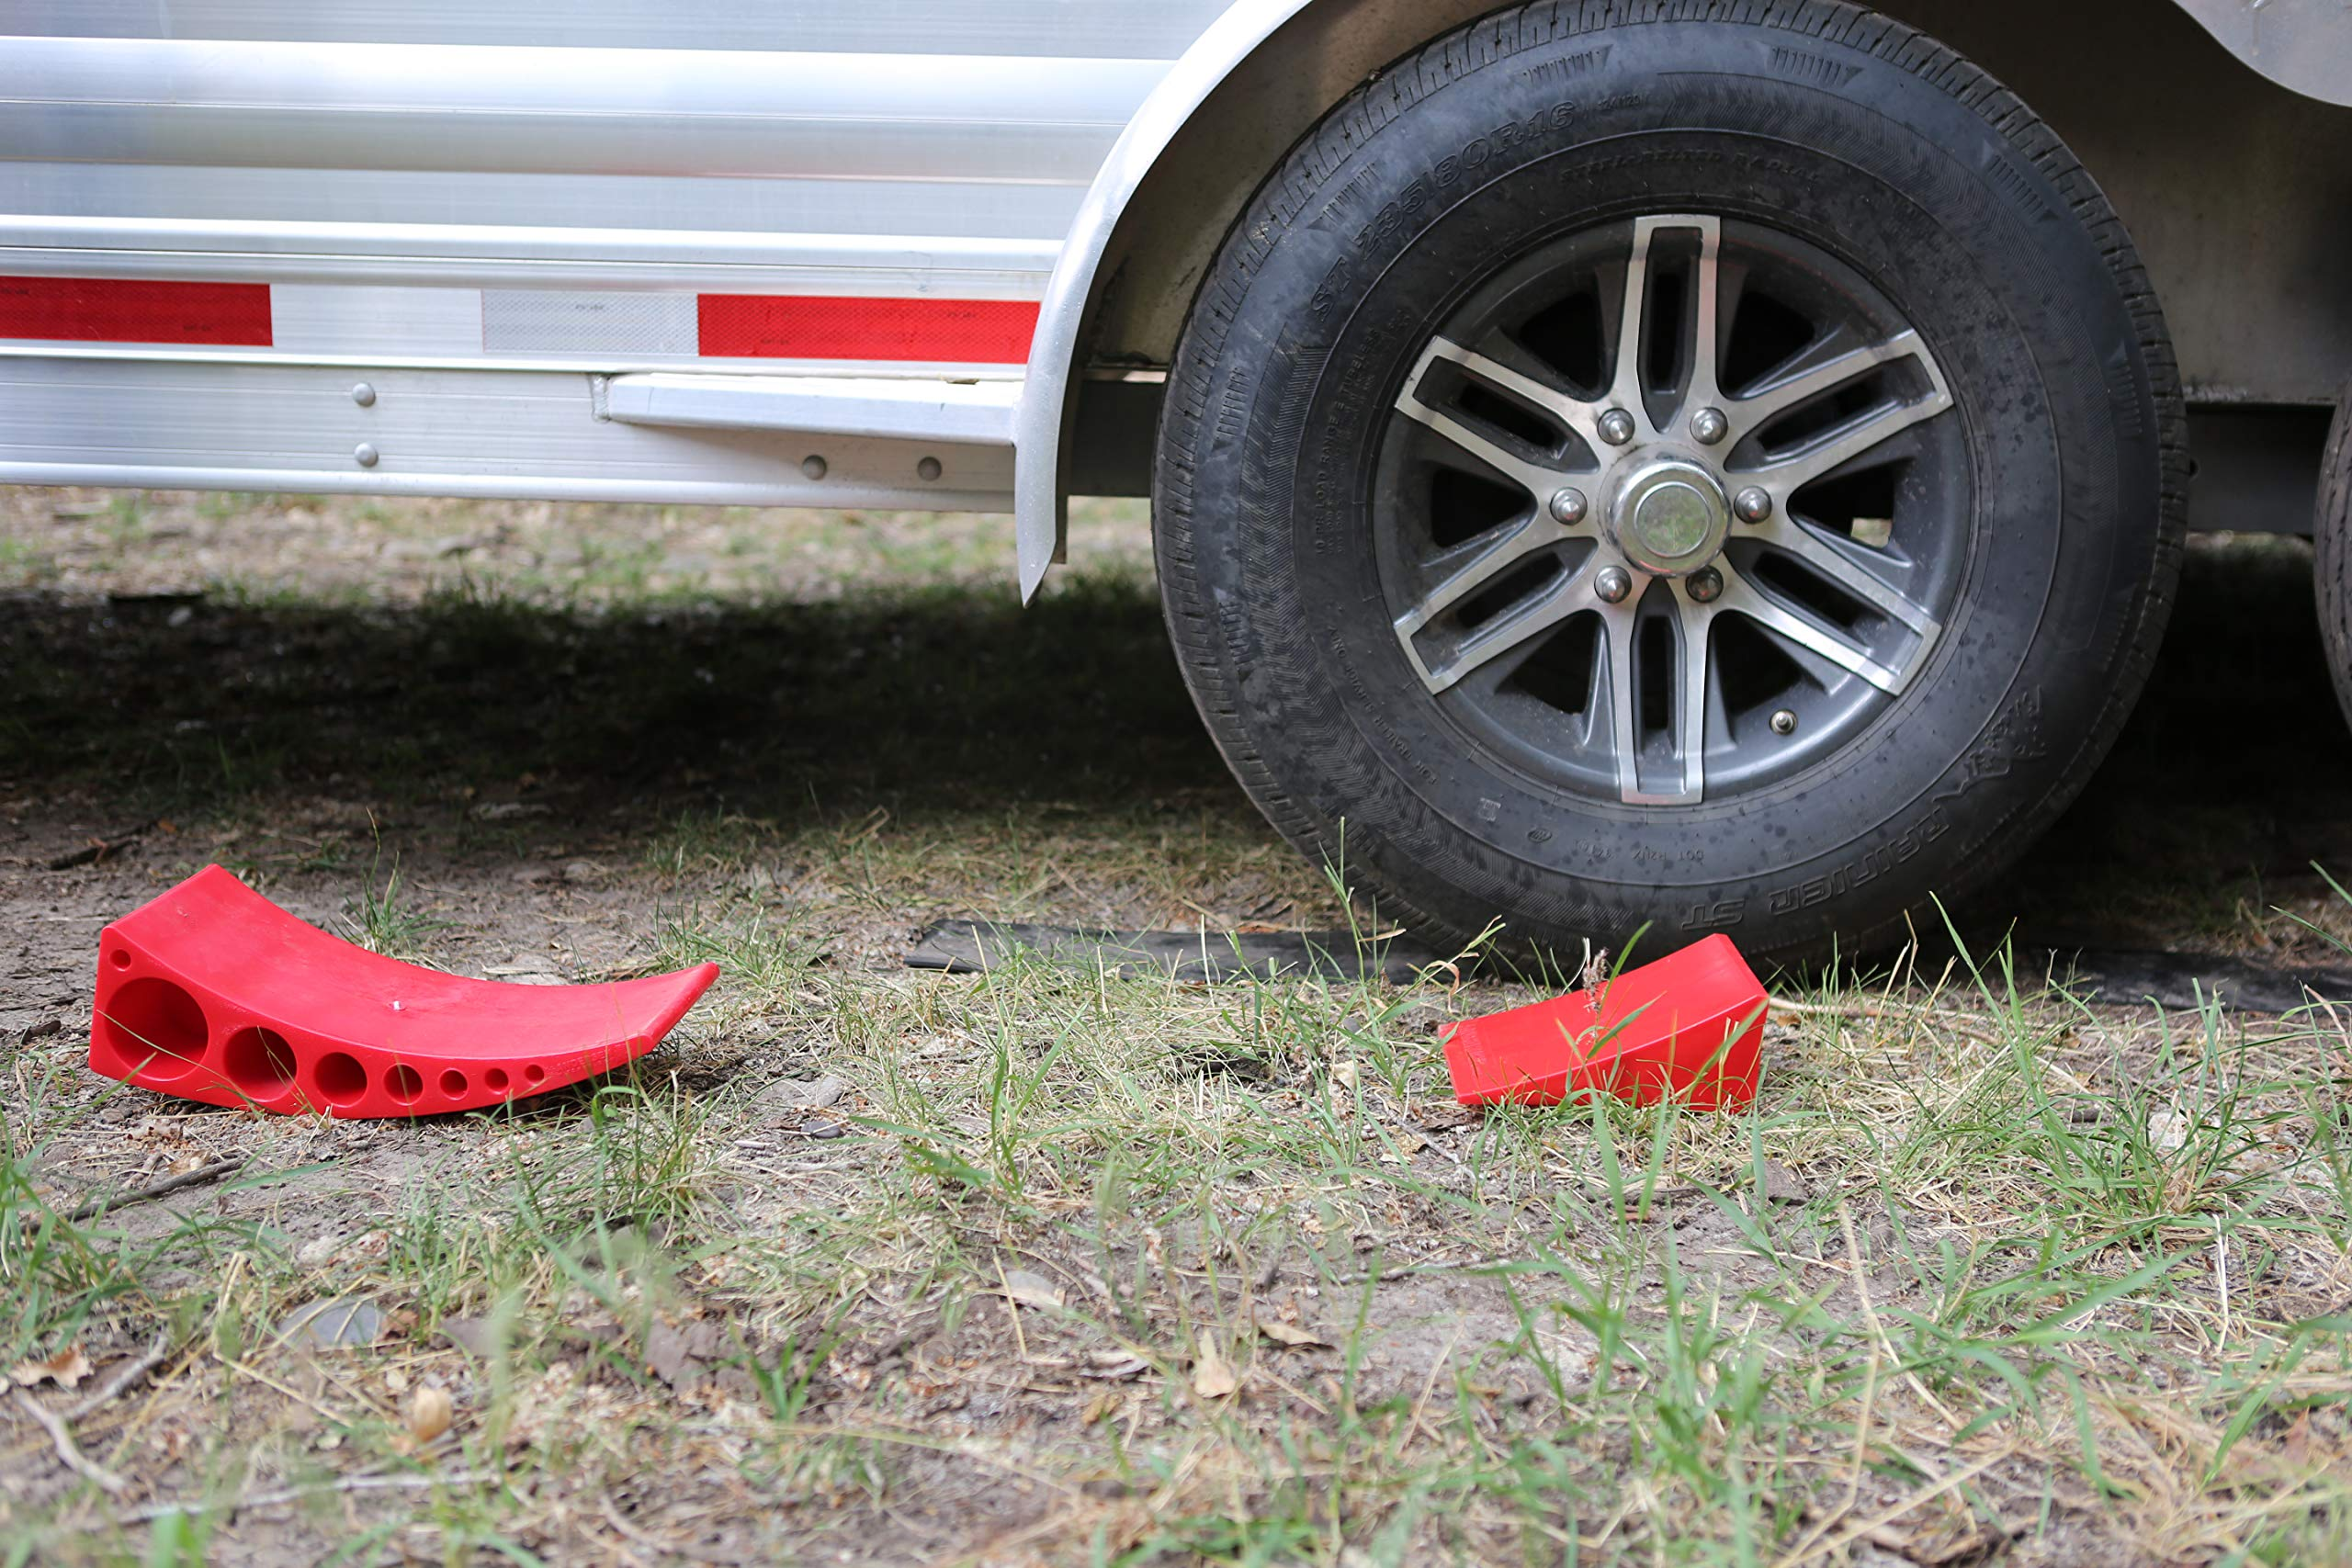 Andersen Hitches Camper Leveler 3604 + Rubber Mat | Easy Drive-On Camper Leveling | Less Than 5 Minutes to Level Your Camper, Trailer, RV, Motorhome | Faster, Easier Than RV Leveling Blocks by Andersen Hitches (Image #3)